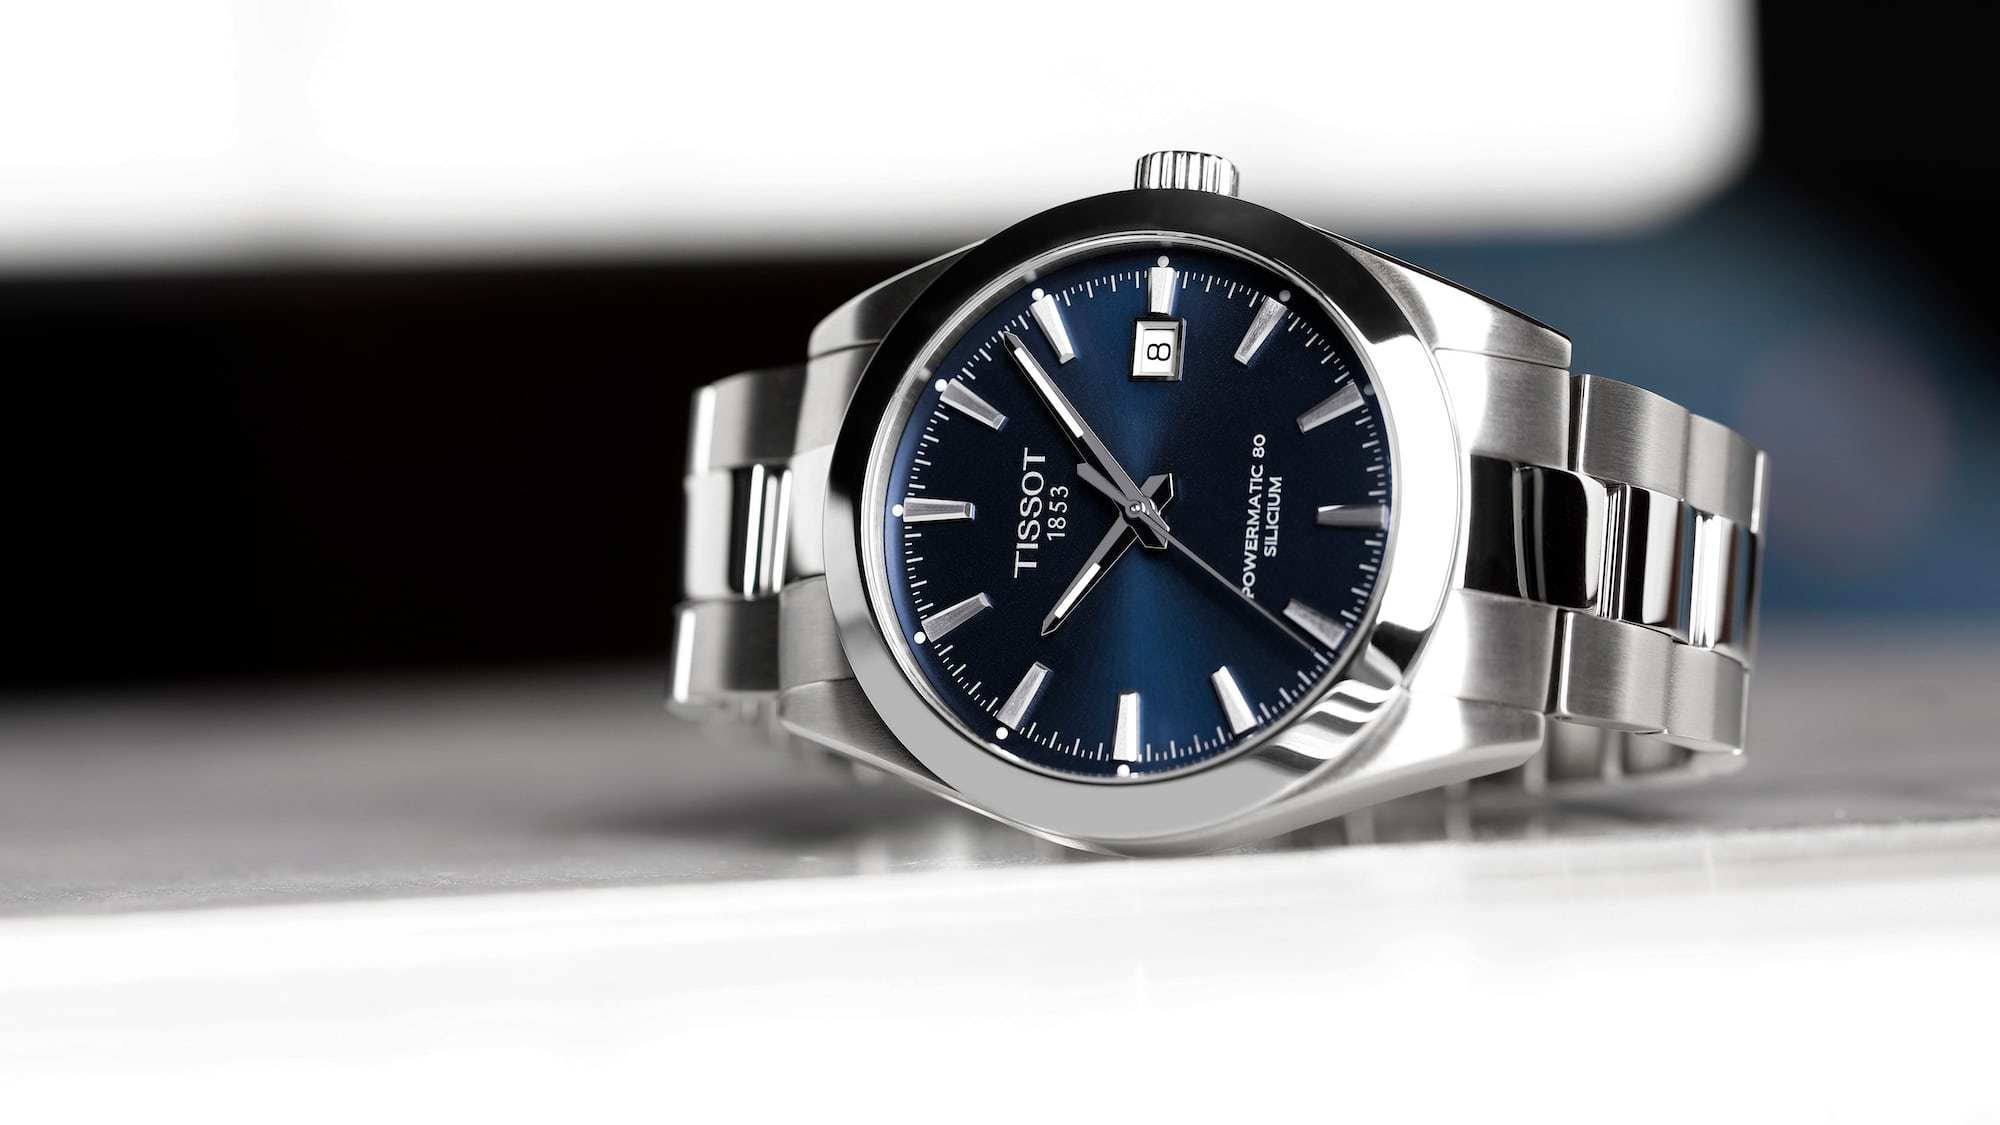 Introducing: The Tissot Gentleman With Powermatic Movement